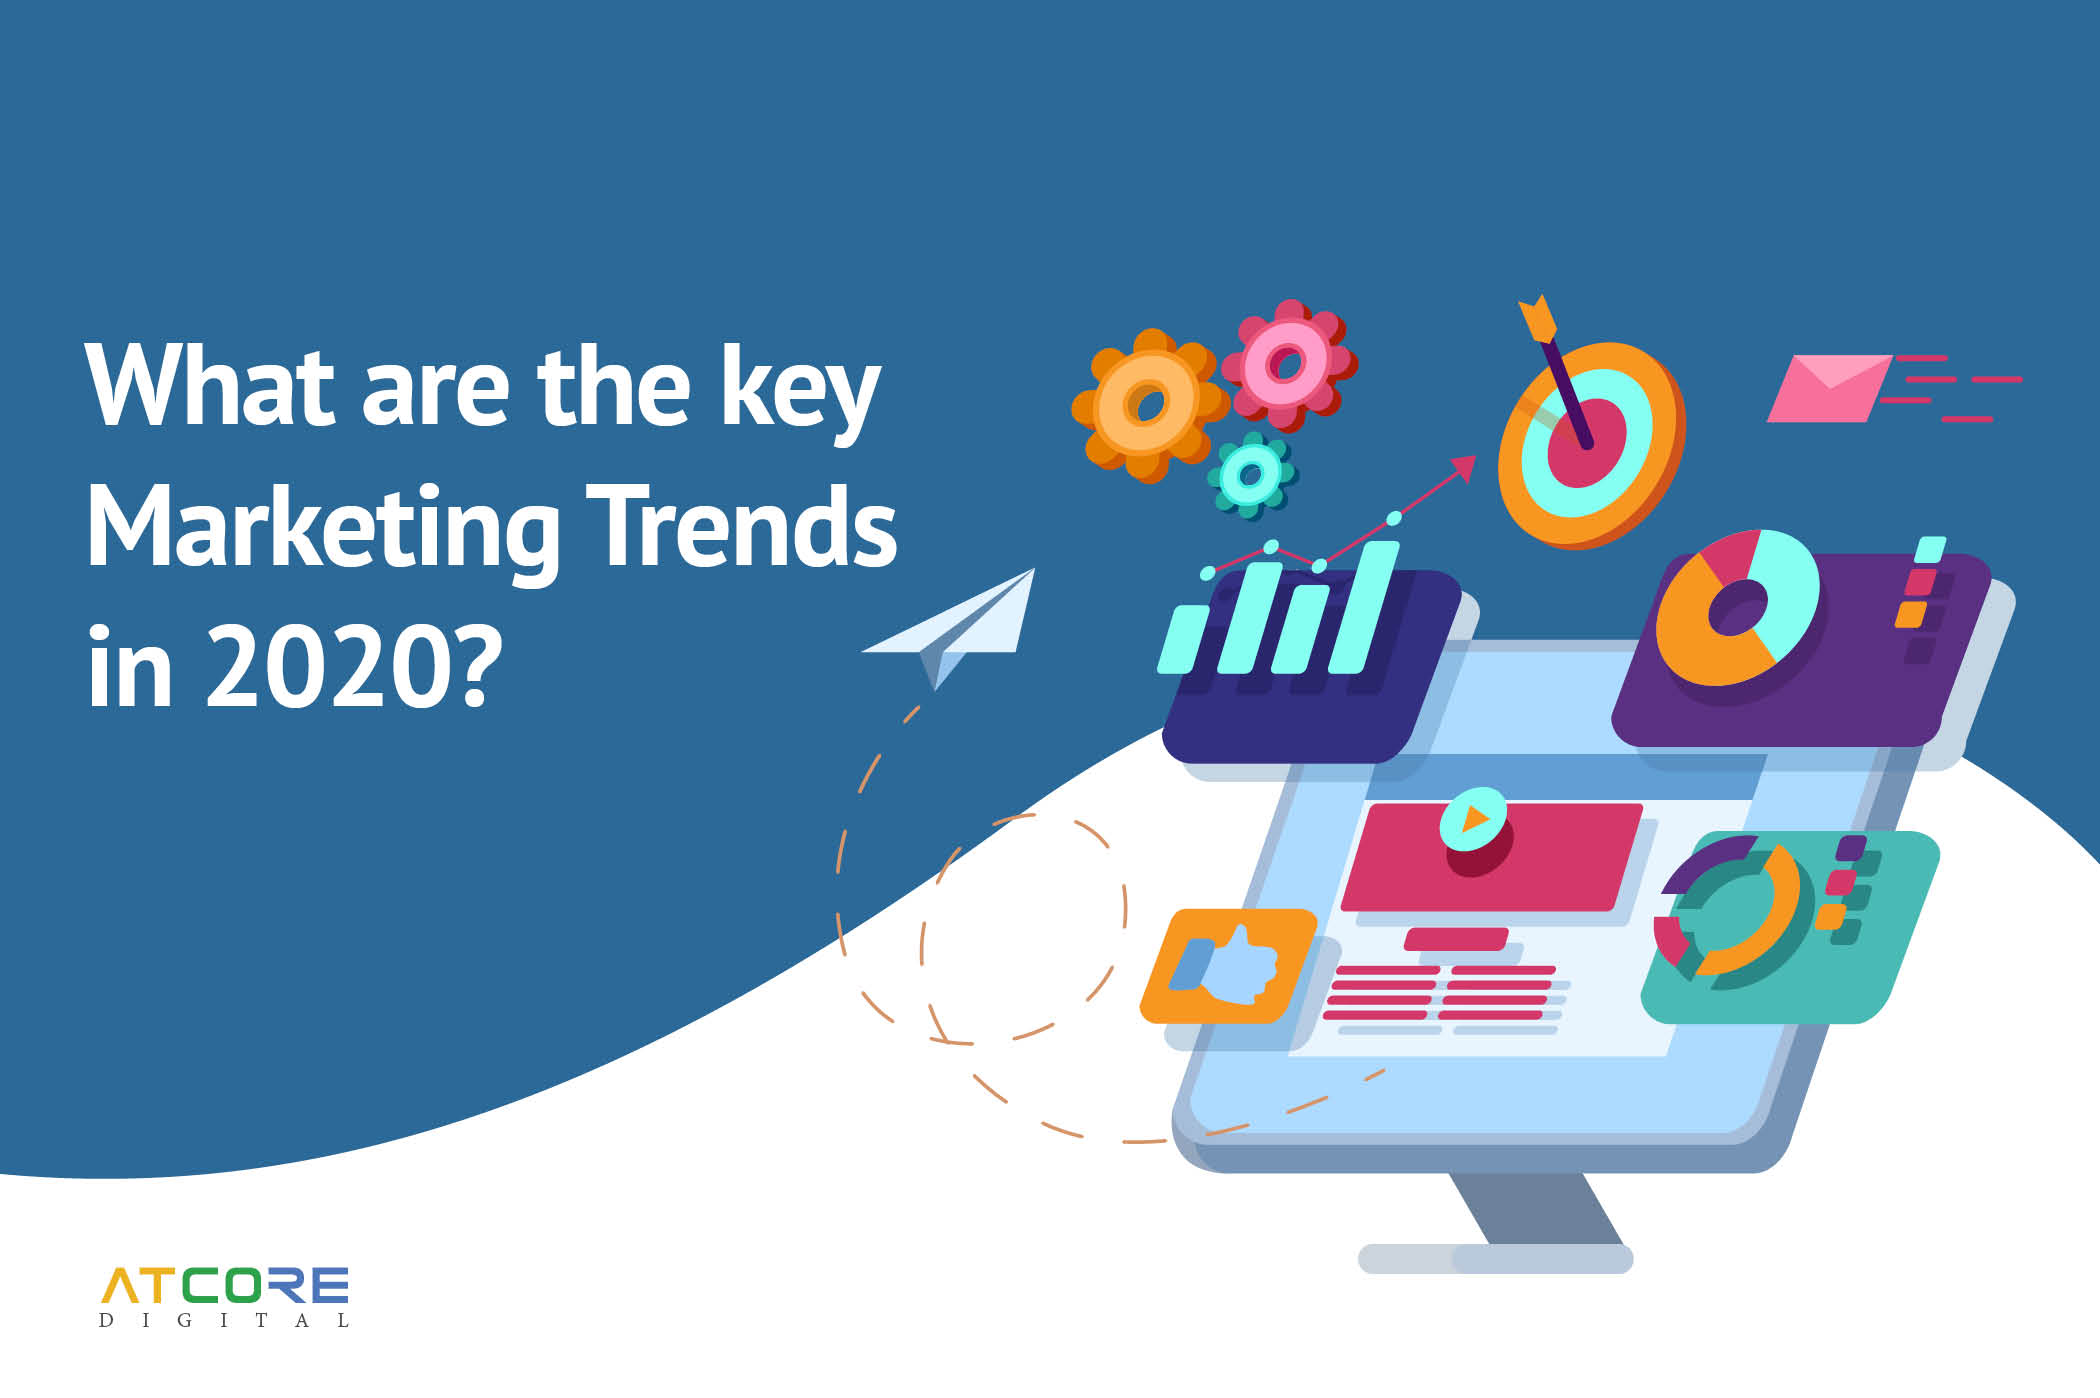 What are the Key Marketing Trends in 2020?